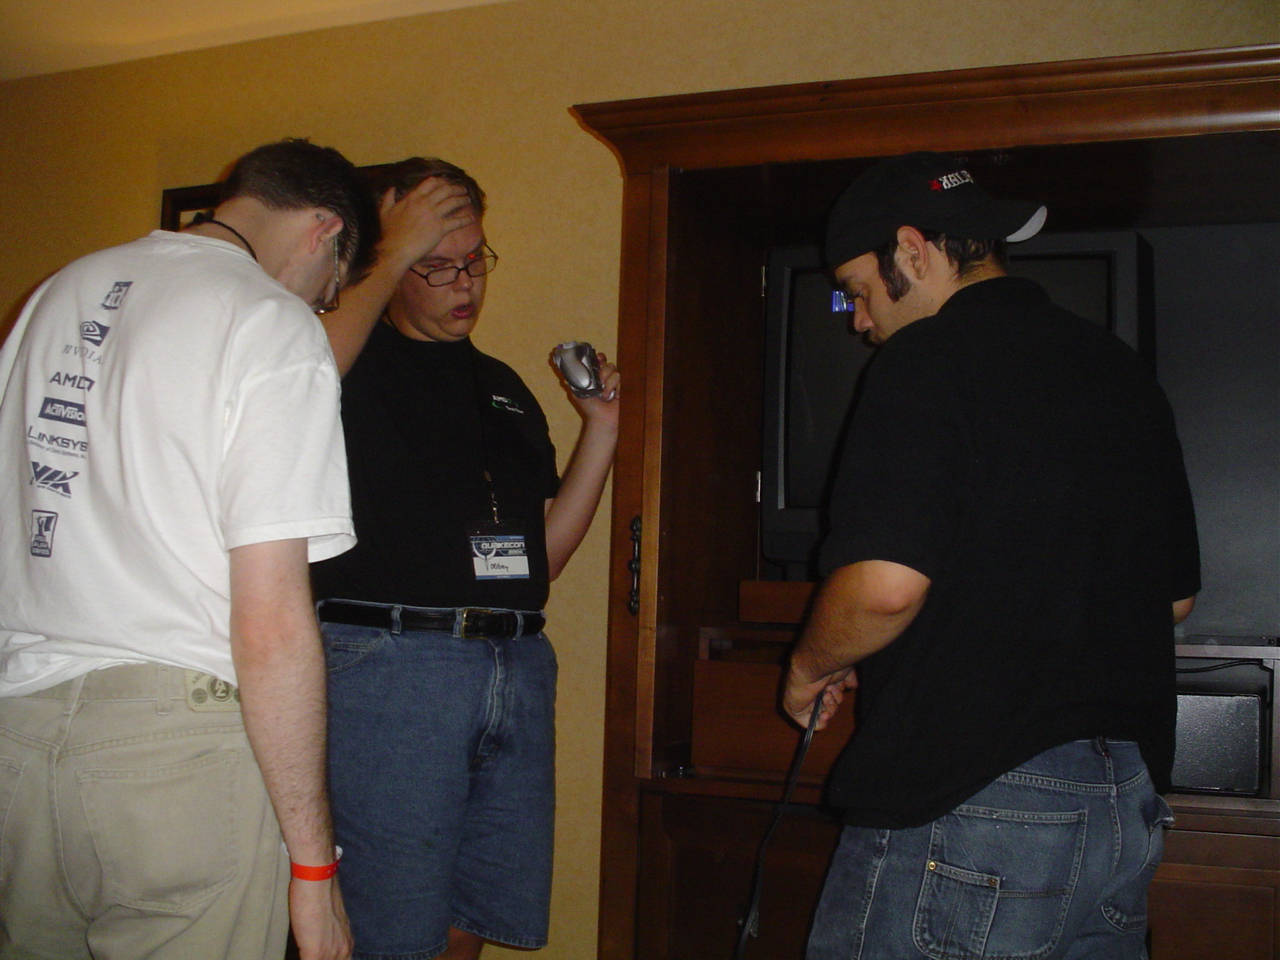 How many Wireheaders does it take to plug in a GameCube?